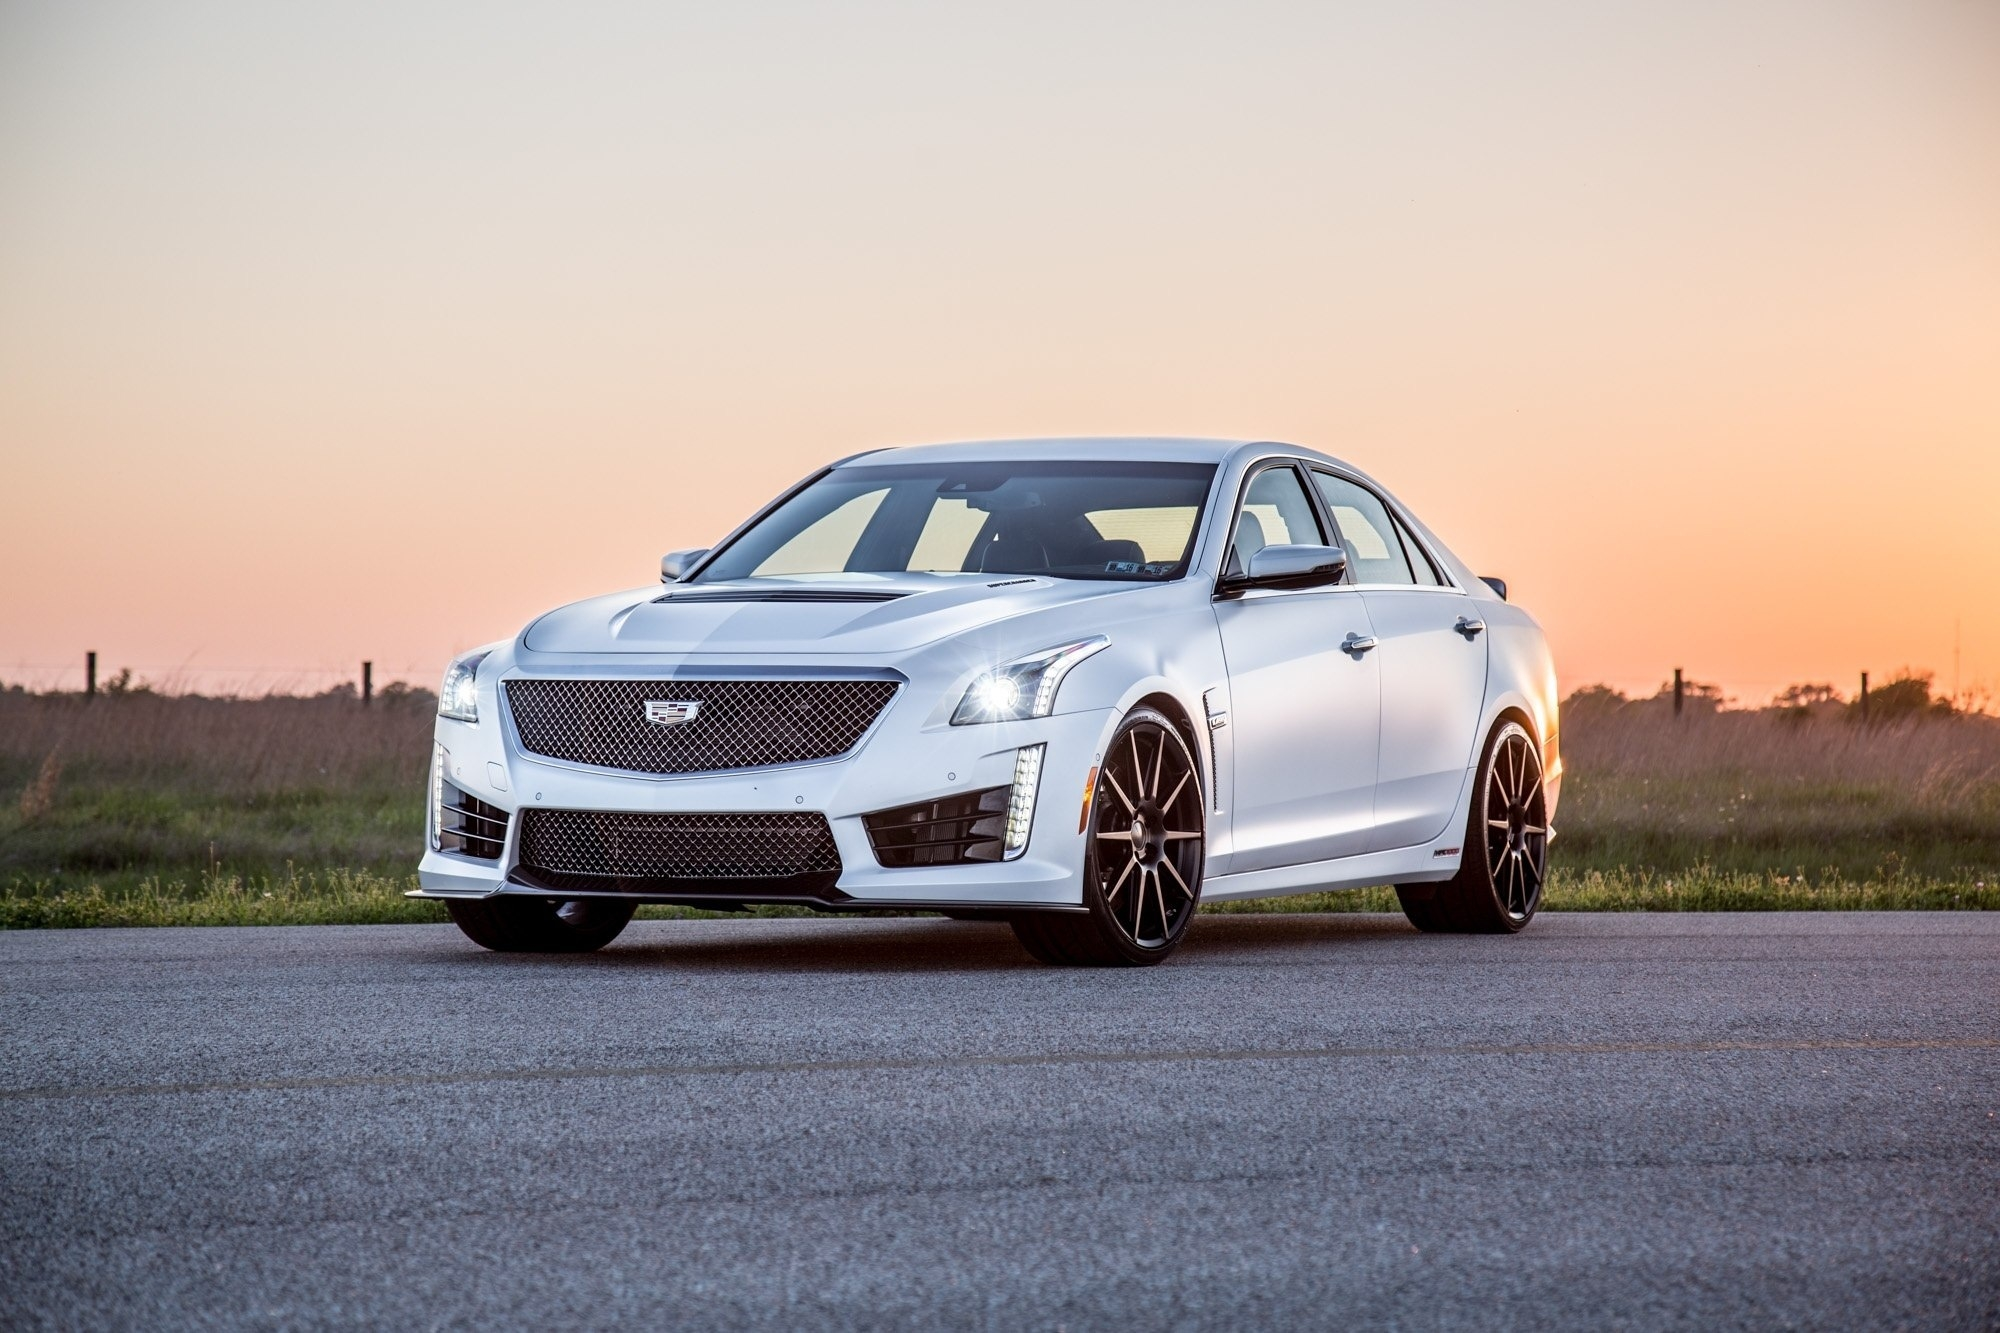 48 The Best 2020 Cadillac CTS V Ratings